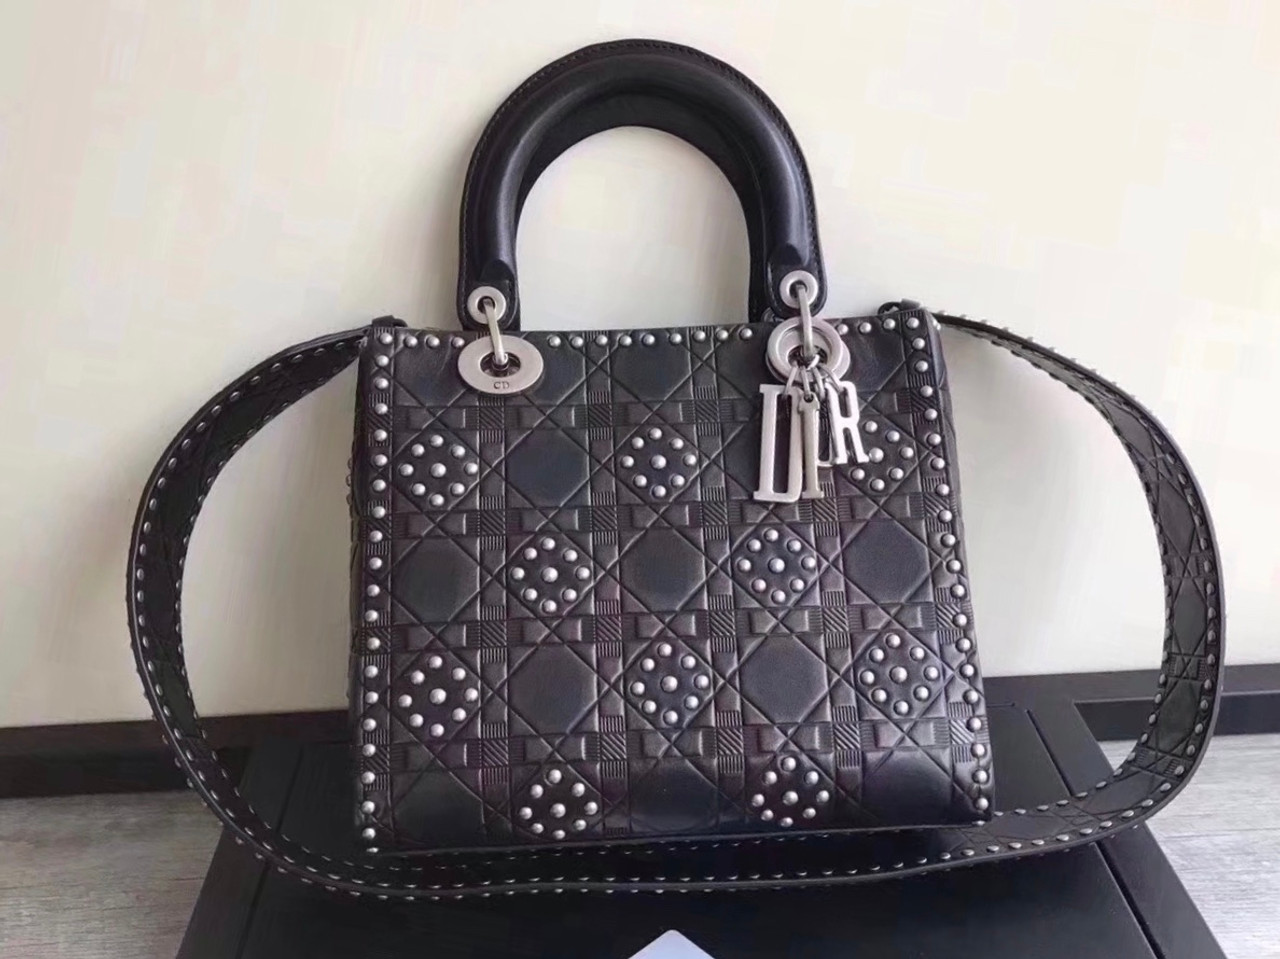 Christian Dior Cruise 2018 LADY DIOR BAG IN BLACK STUDDED CALFSKIN ... 2be04df0e66fd